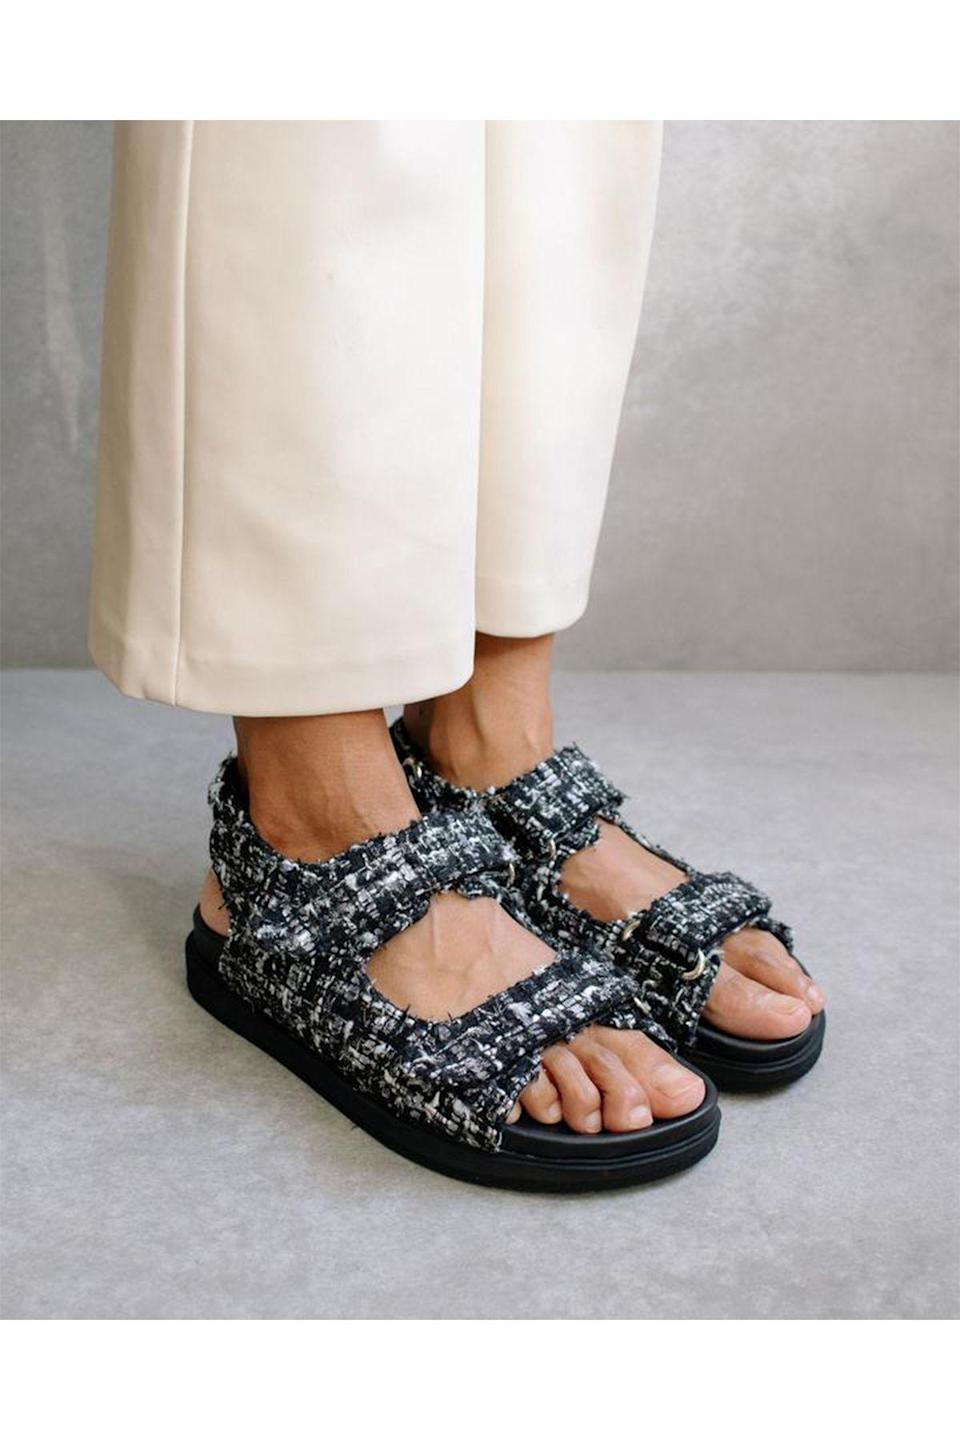 """<p><strong>Alohas</strong></p><p>alohas.io</p><p><strong>$183.00</strong></p><p><a href=""""https://www.alohas.io/collections/best-sellers/products/hook-loop-tweed-sandal?variant=37512827404481"""" rel=""""nofollow noopener"""" target=""""_blank"""" data-ylk=""""slk:Shop Now"""" class=""""link rapid-noclick-resp"""">Shop Now</a></p><p>Alohas shoes are always super chic, but when they give back to the planet as well, what's not to love? A preorder system prevents overproduction and the brand's suppliers work with the Leather Working Group, the world's largest leather sustainability program. </p>"""